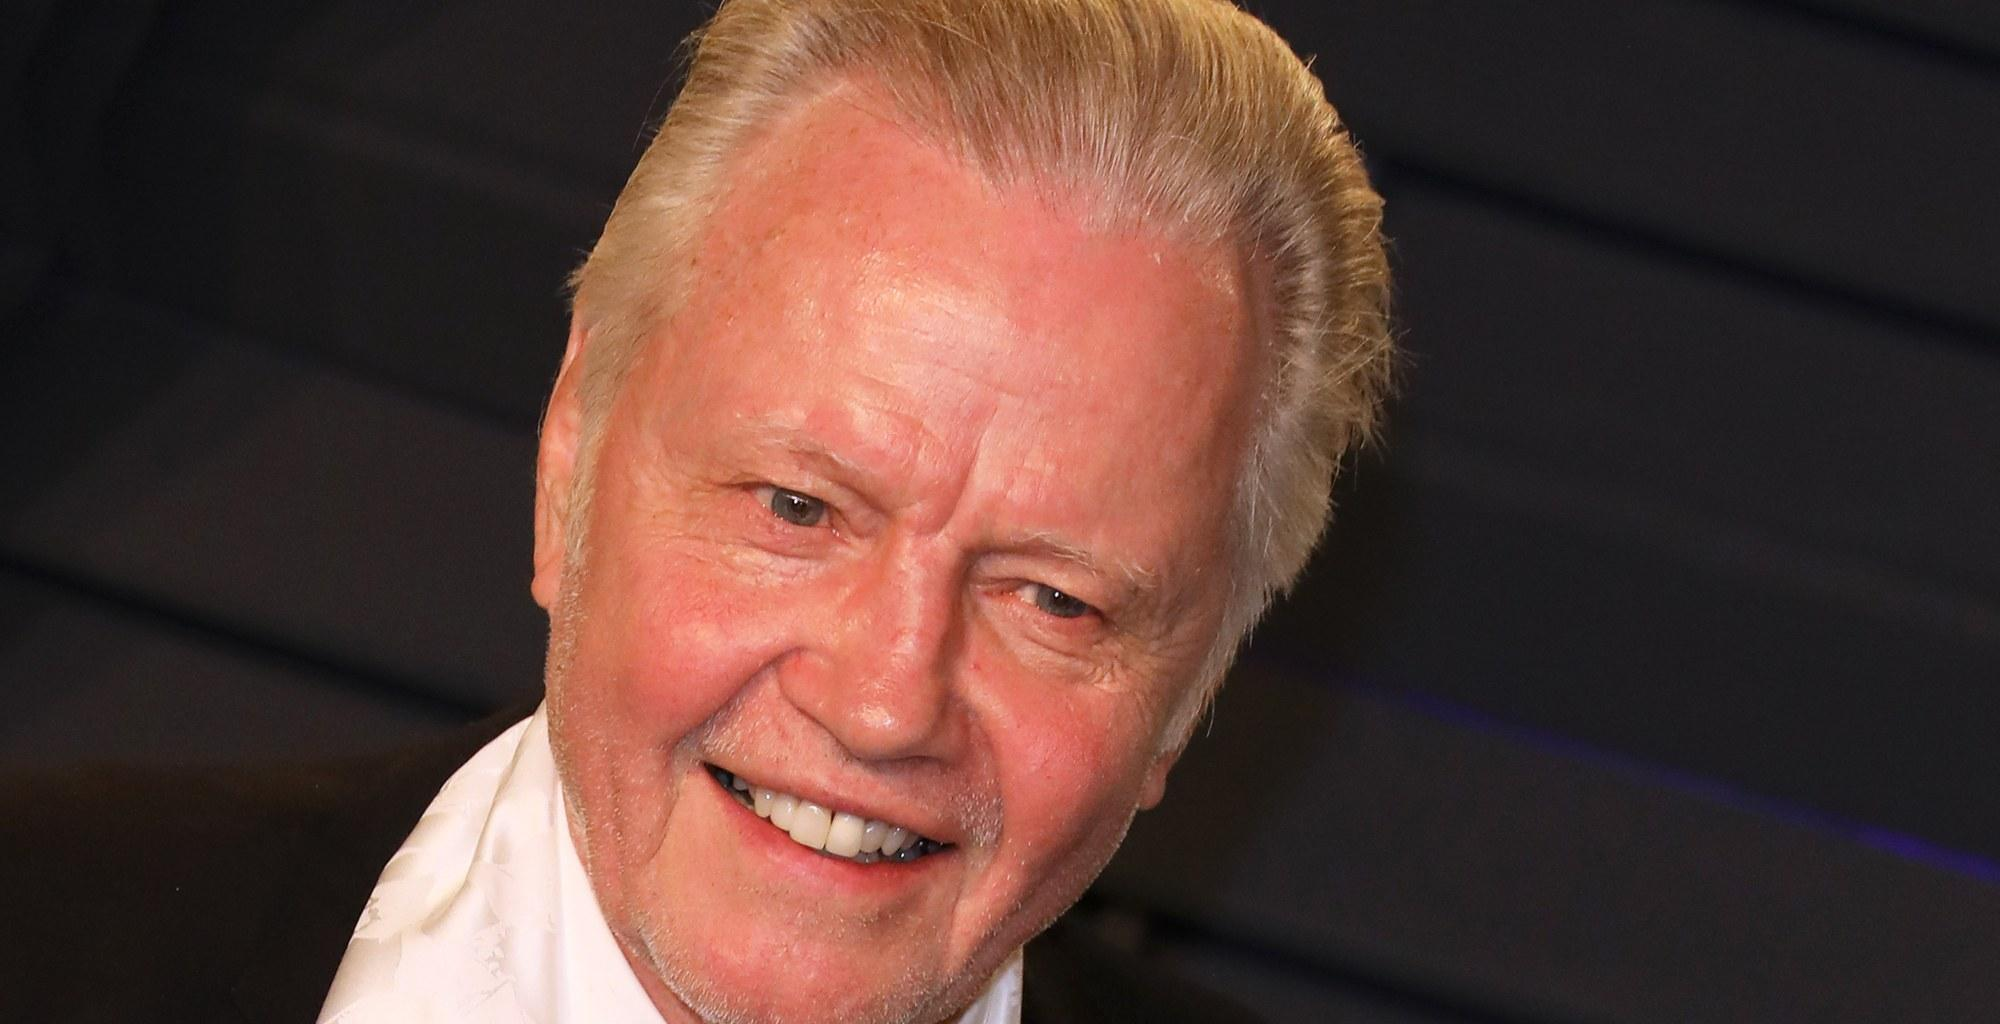 Angelina Jolie's Father Jon Voight Is Really Hands-On With His Six Grandkids, Source Says - Here's How!